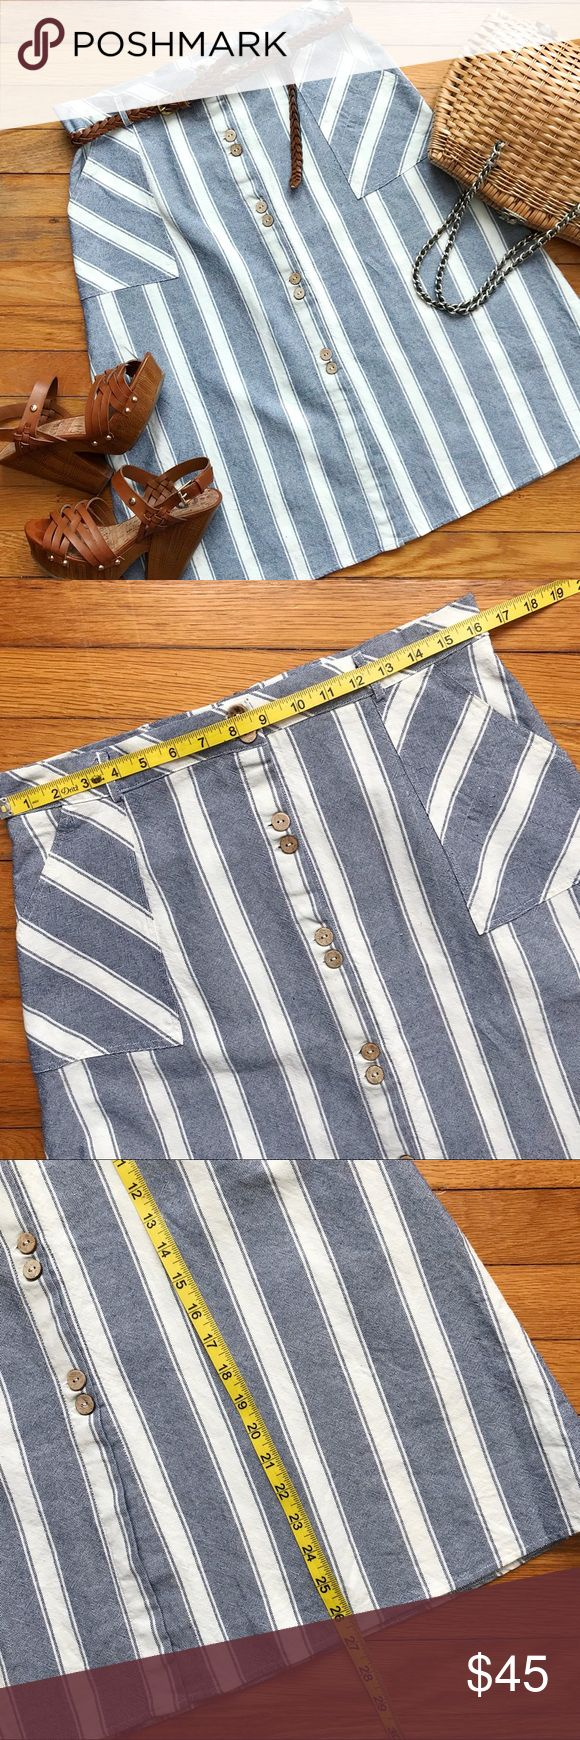 Alya 💘 Chambray is Bae Skirt Tuck your favorite blouses and sweaters in this striped denim midi skirt with large side pockets and full-button front to achieve perfectly preppy, nautical vibes. Braided belt in cover photo is not included.  • Very good gently worn condition. There are a couple little nubs in the fabric, but they aren't visible unless closely inspecting the garment. • 100% cotton. • 20% off any 2 items! 💰 Alya Skirts Midi